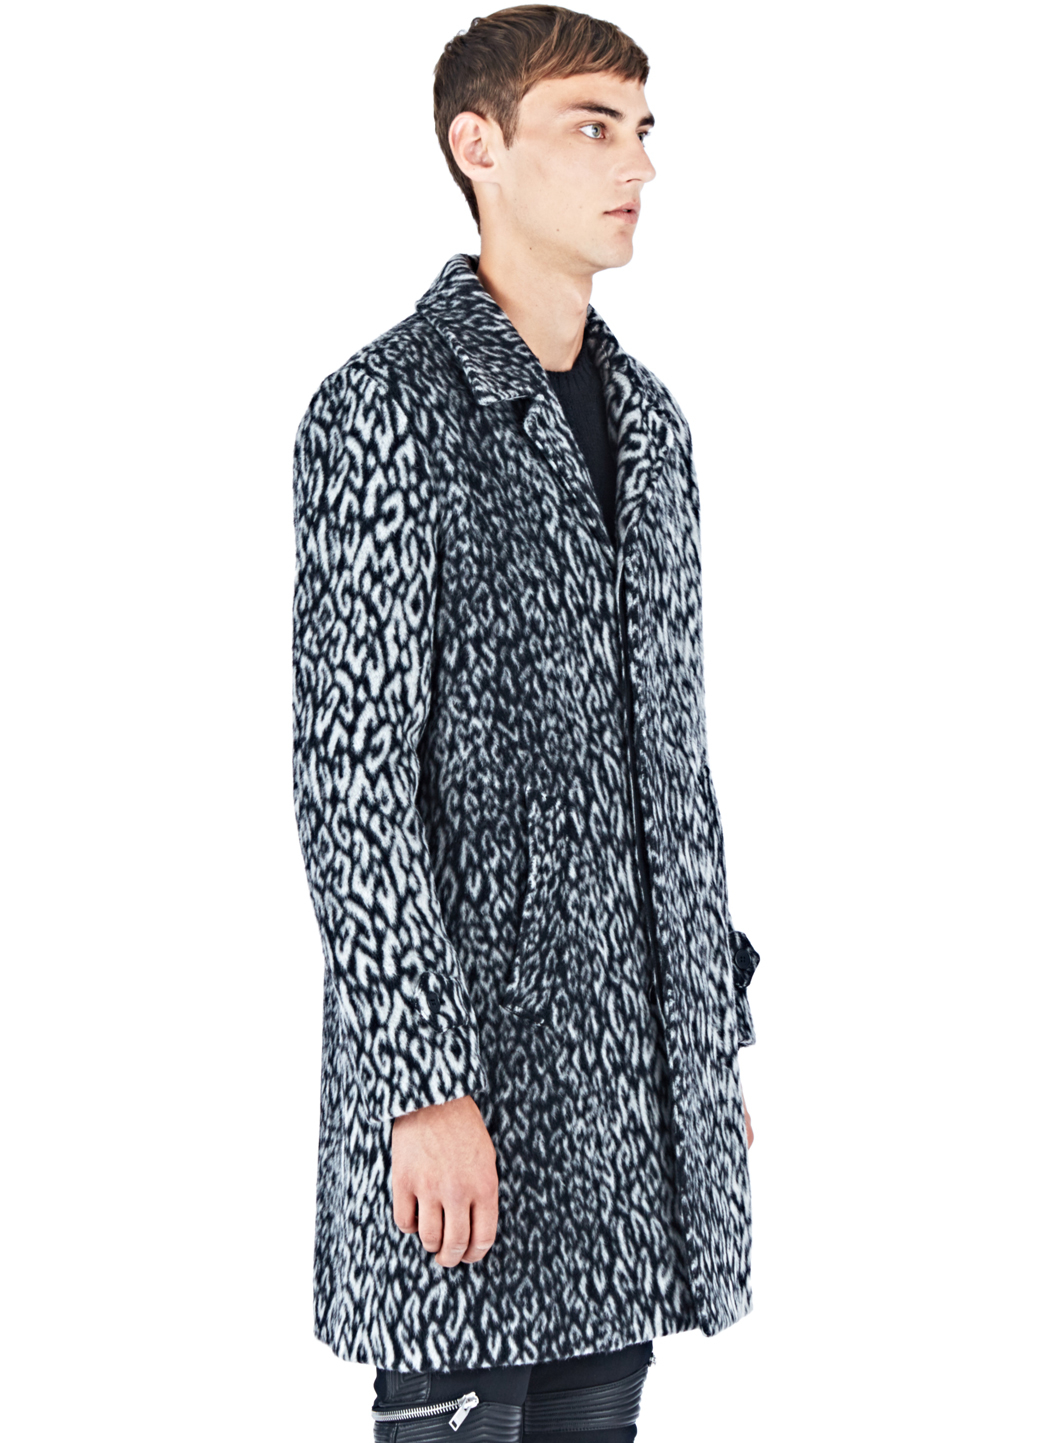 a5f40870adc Saint Laurent Leopard Print Faux Fur Coat in Blue for Men - Lyst